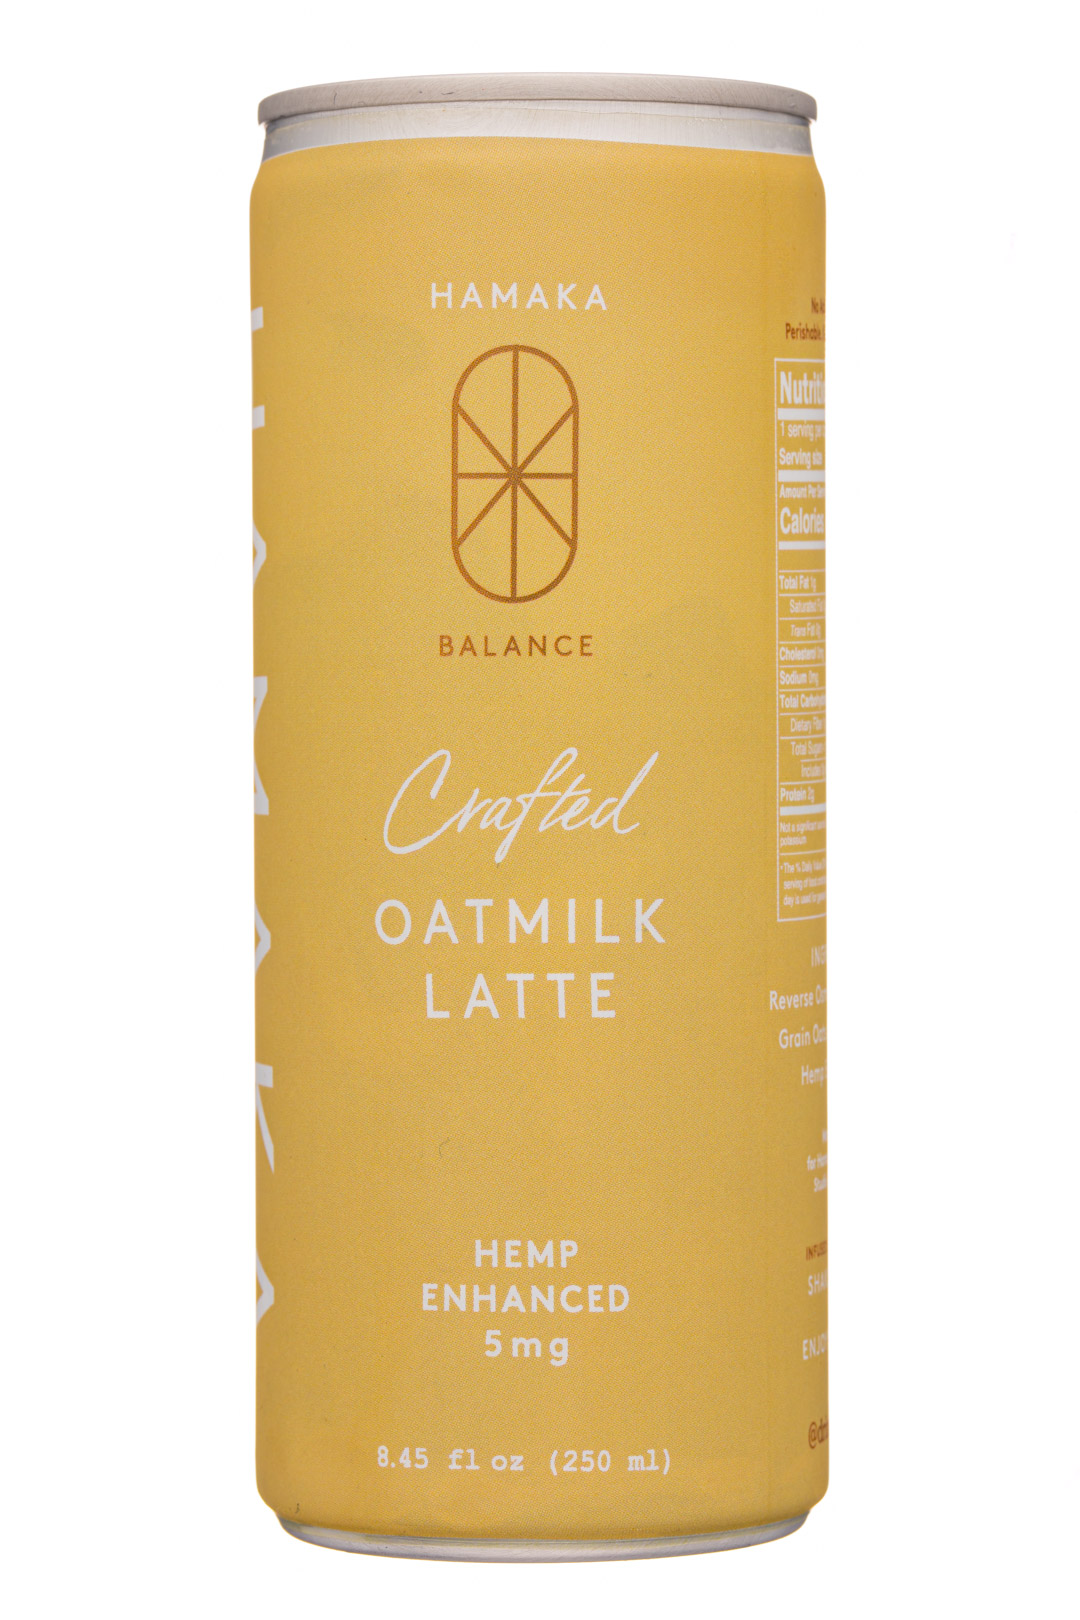 Hemp Enhanced Oatmilk Latte